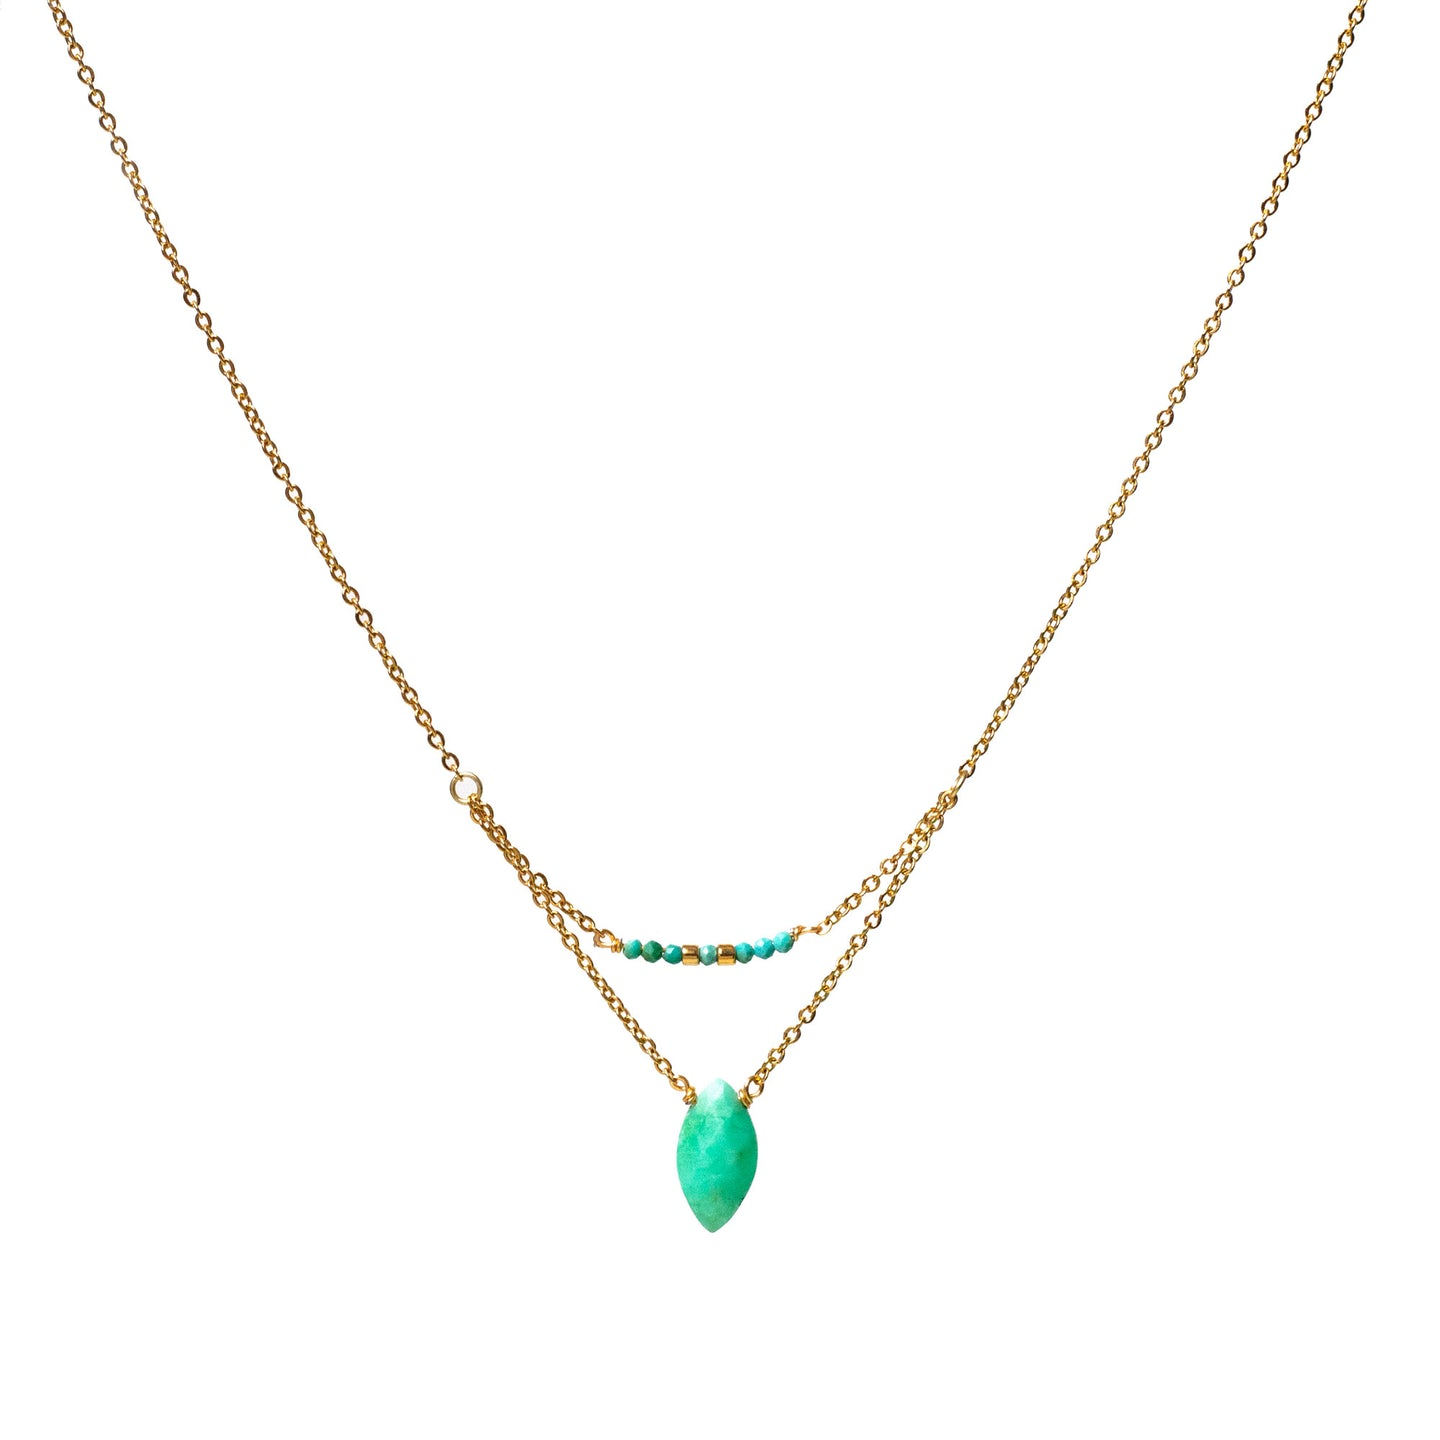 Collier double rangs - Chrysoprase